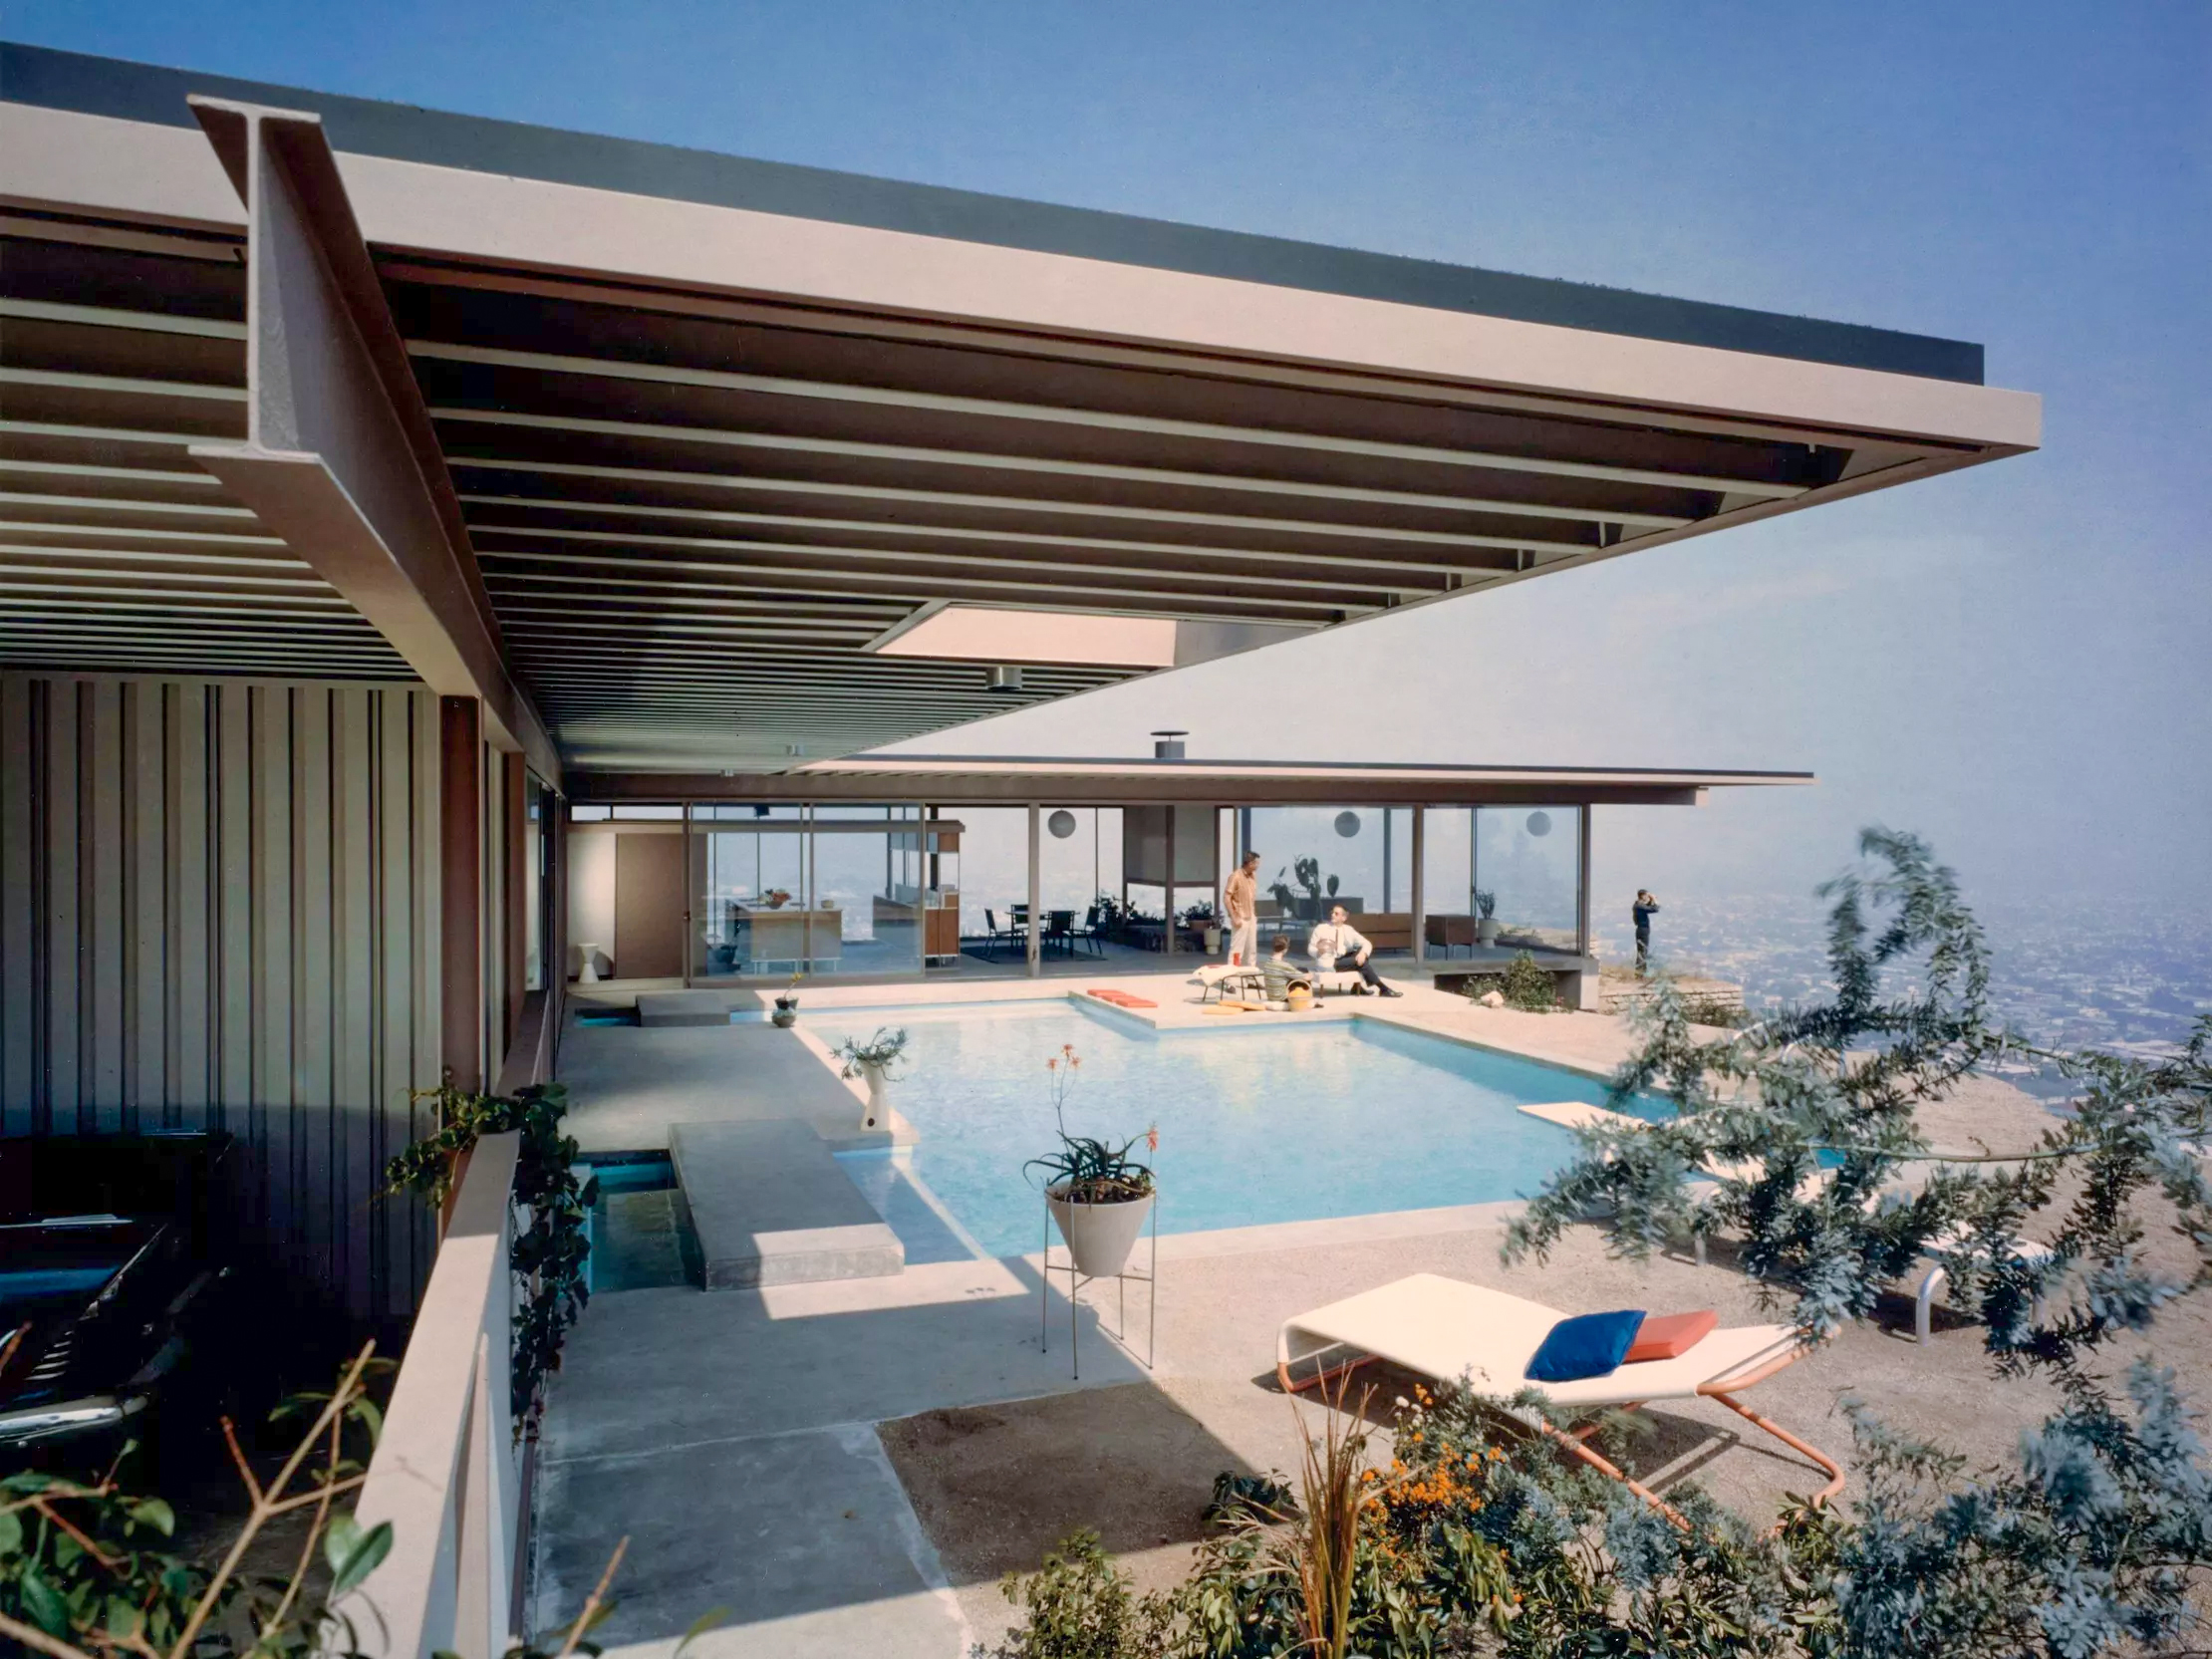 Curbed LA: The Case Study houses that made Los Angeles a modernist mecca |